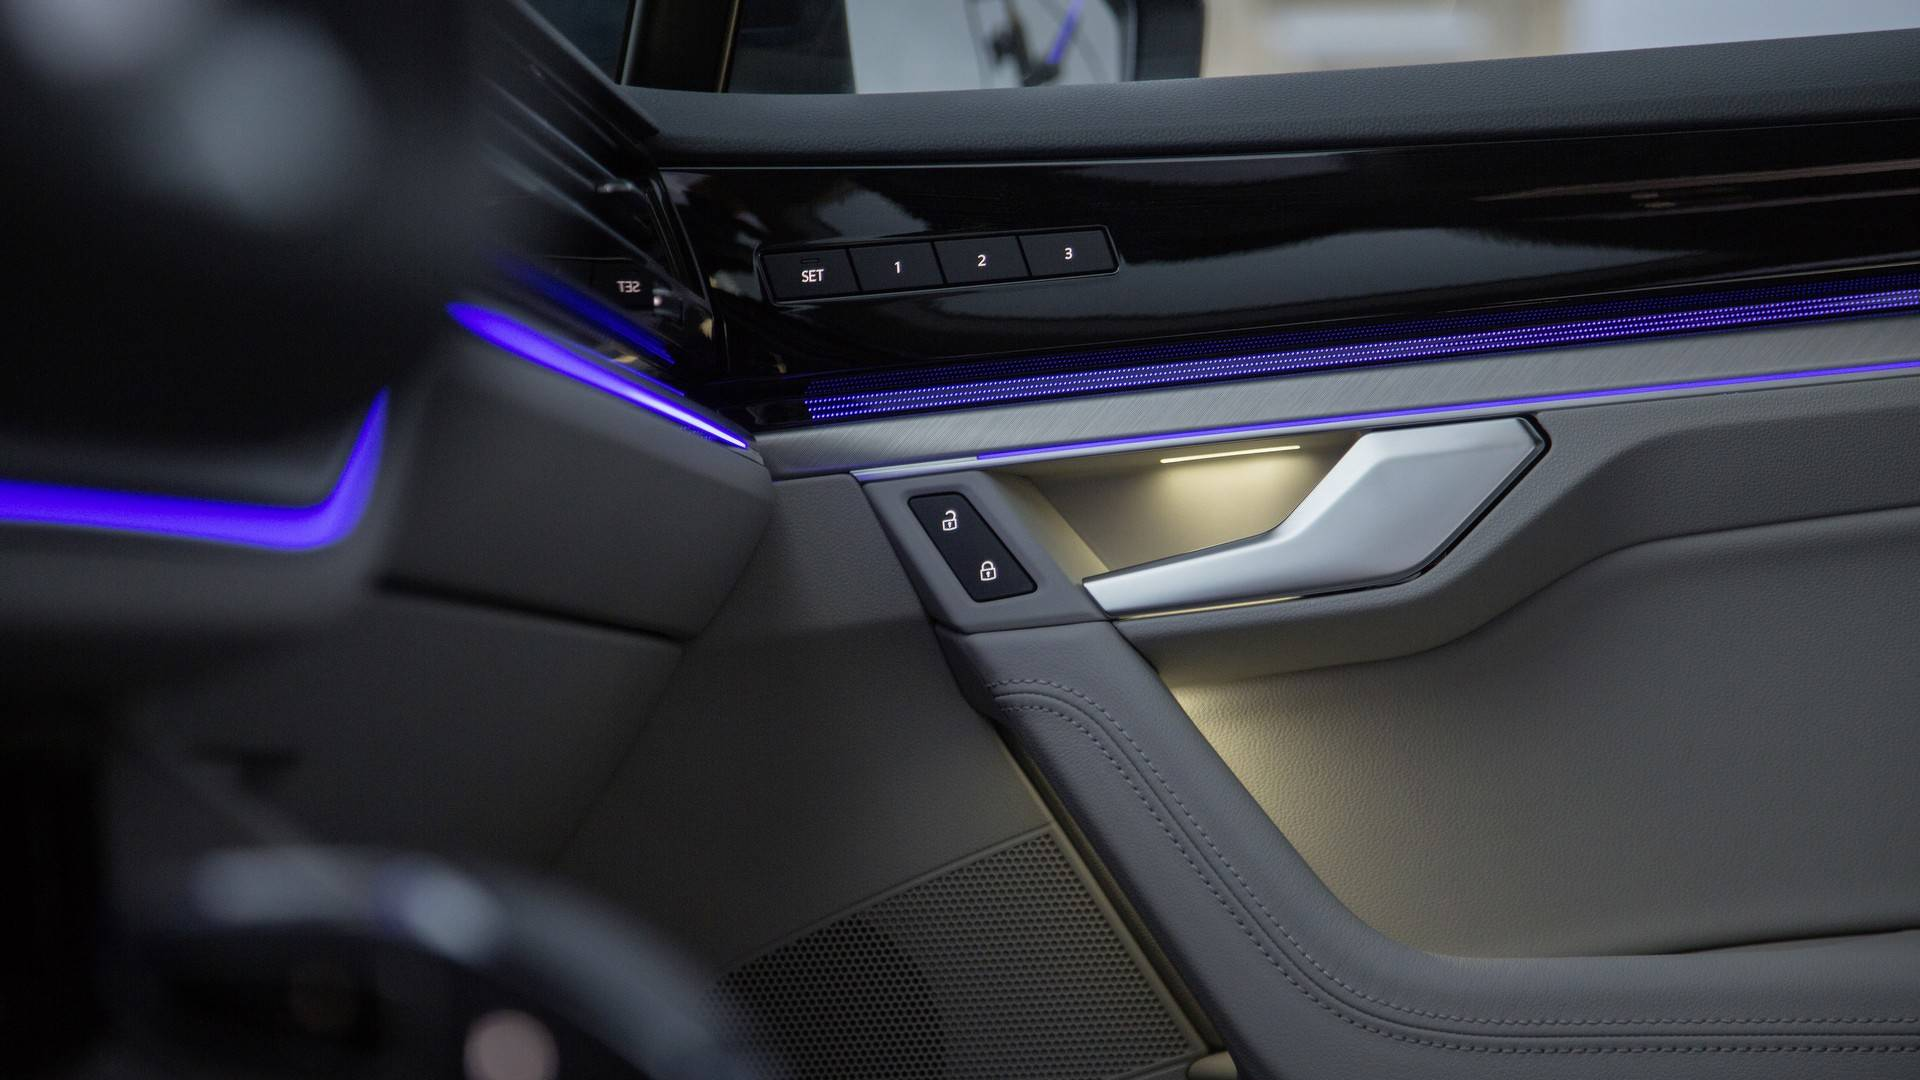 Volkswagen Touareg First Interior Images Reveal Edgy, Modern Design - autoevolution